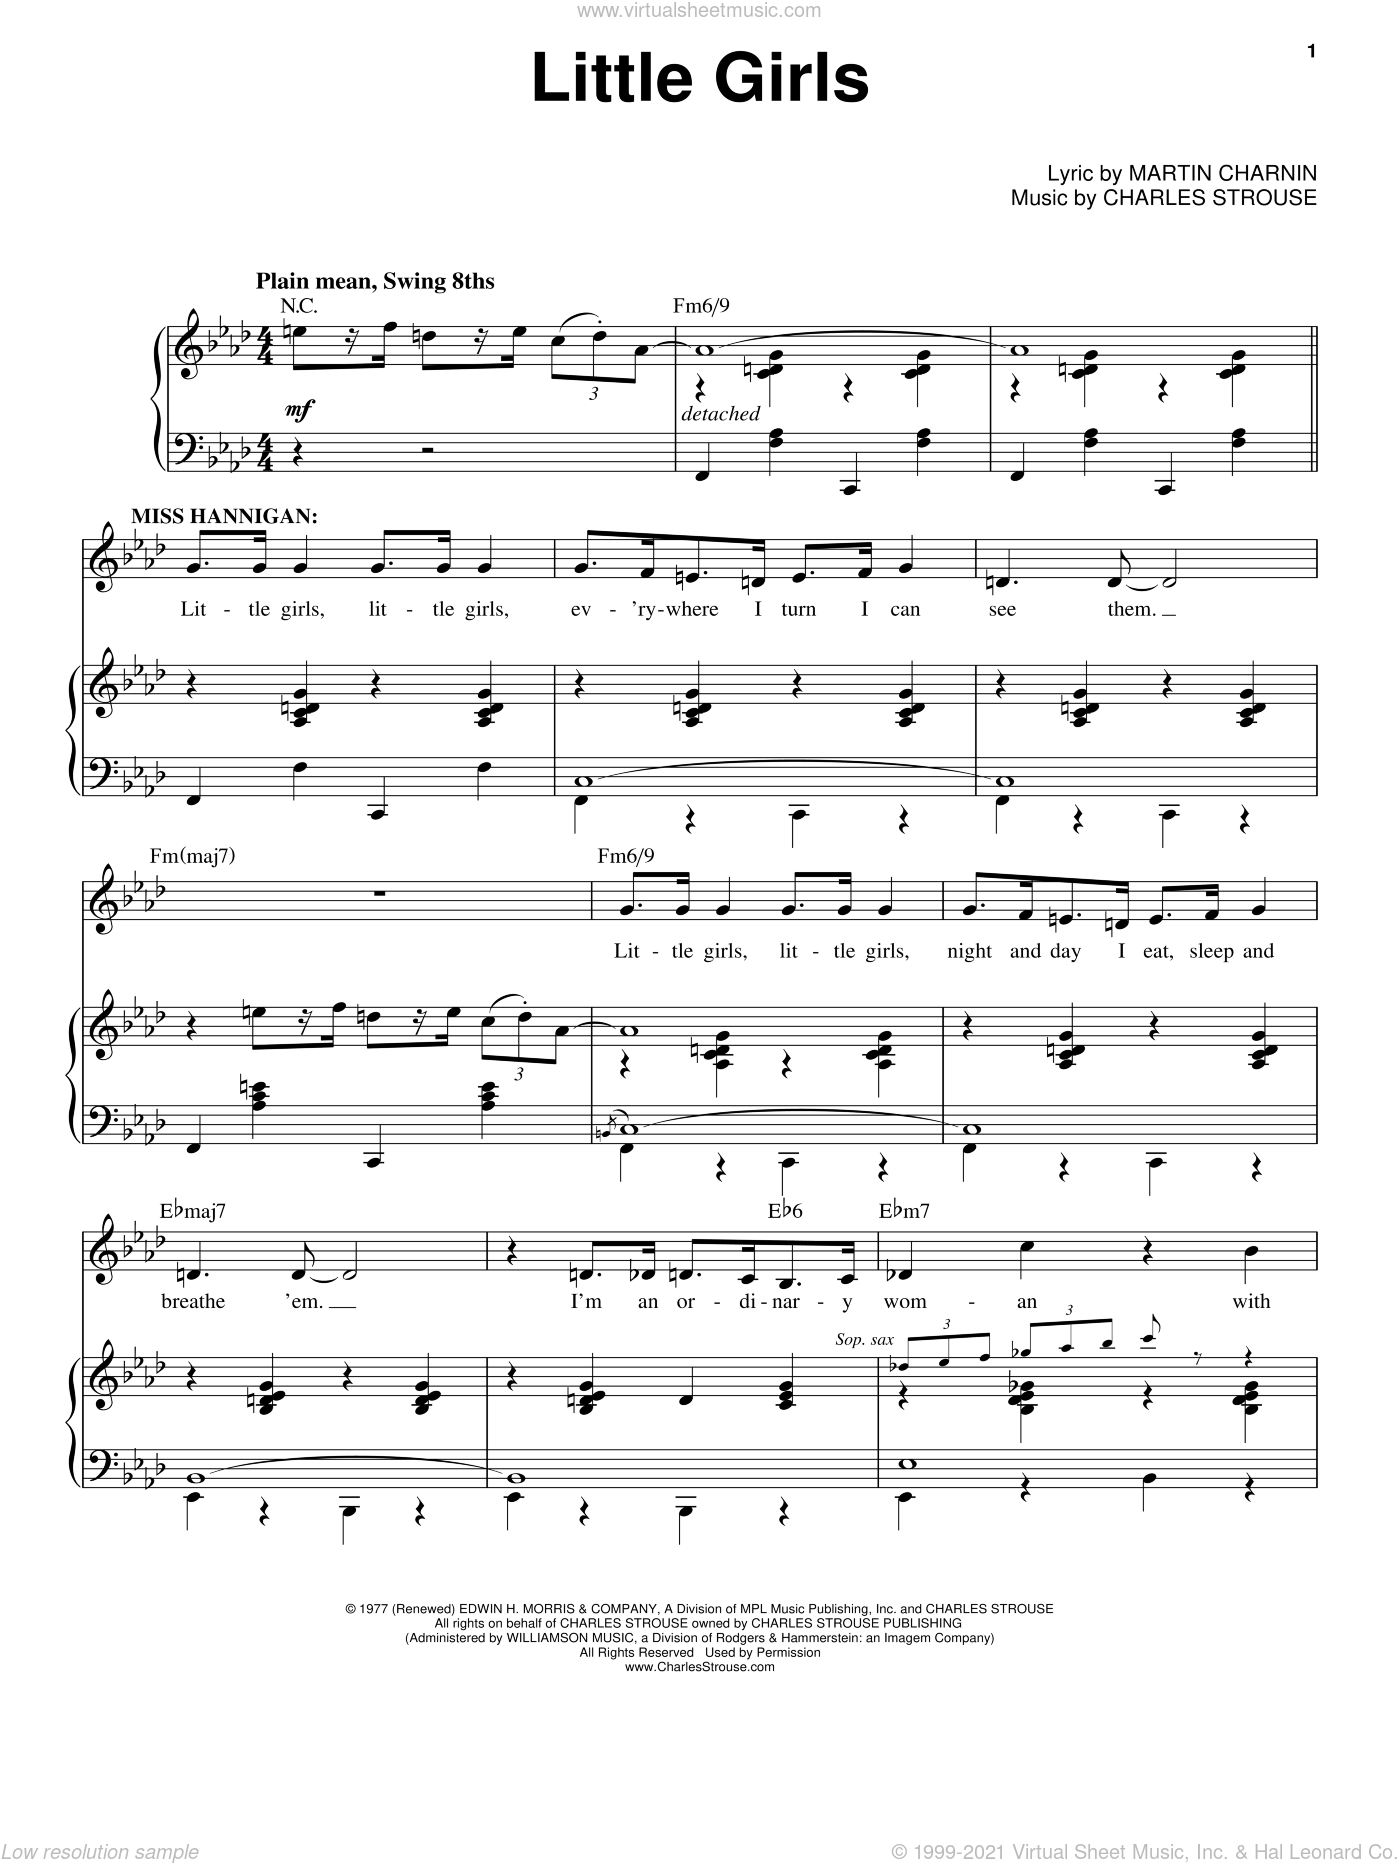 Little Girls sheet music for voice, piano or guitar by Charles Strouse, intermediate. Score Image Preview.